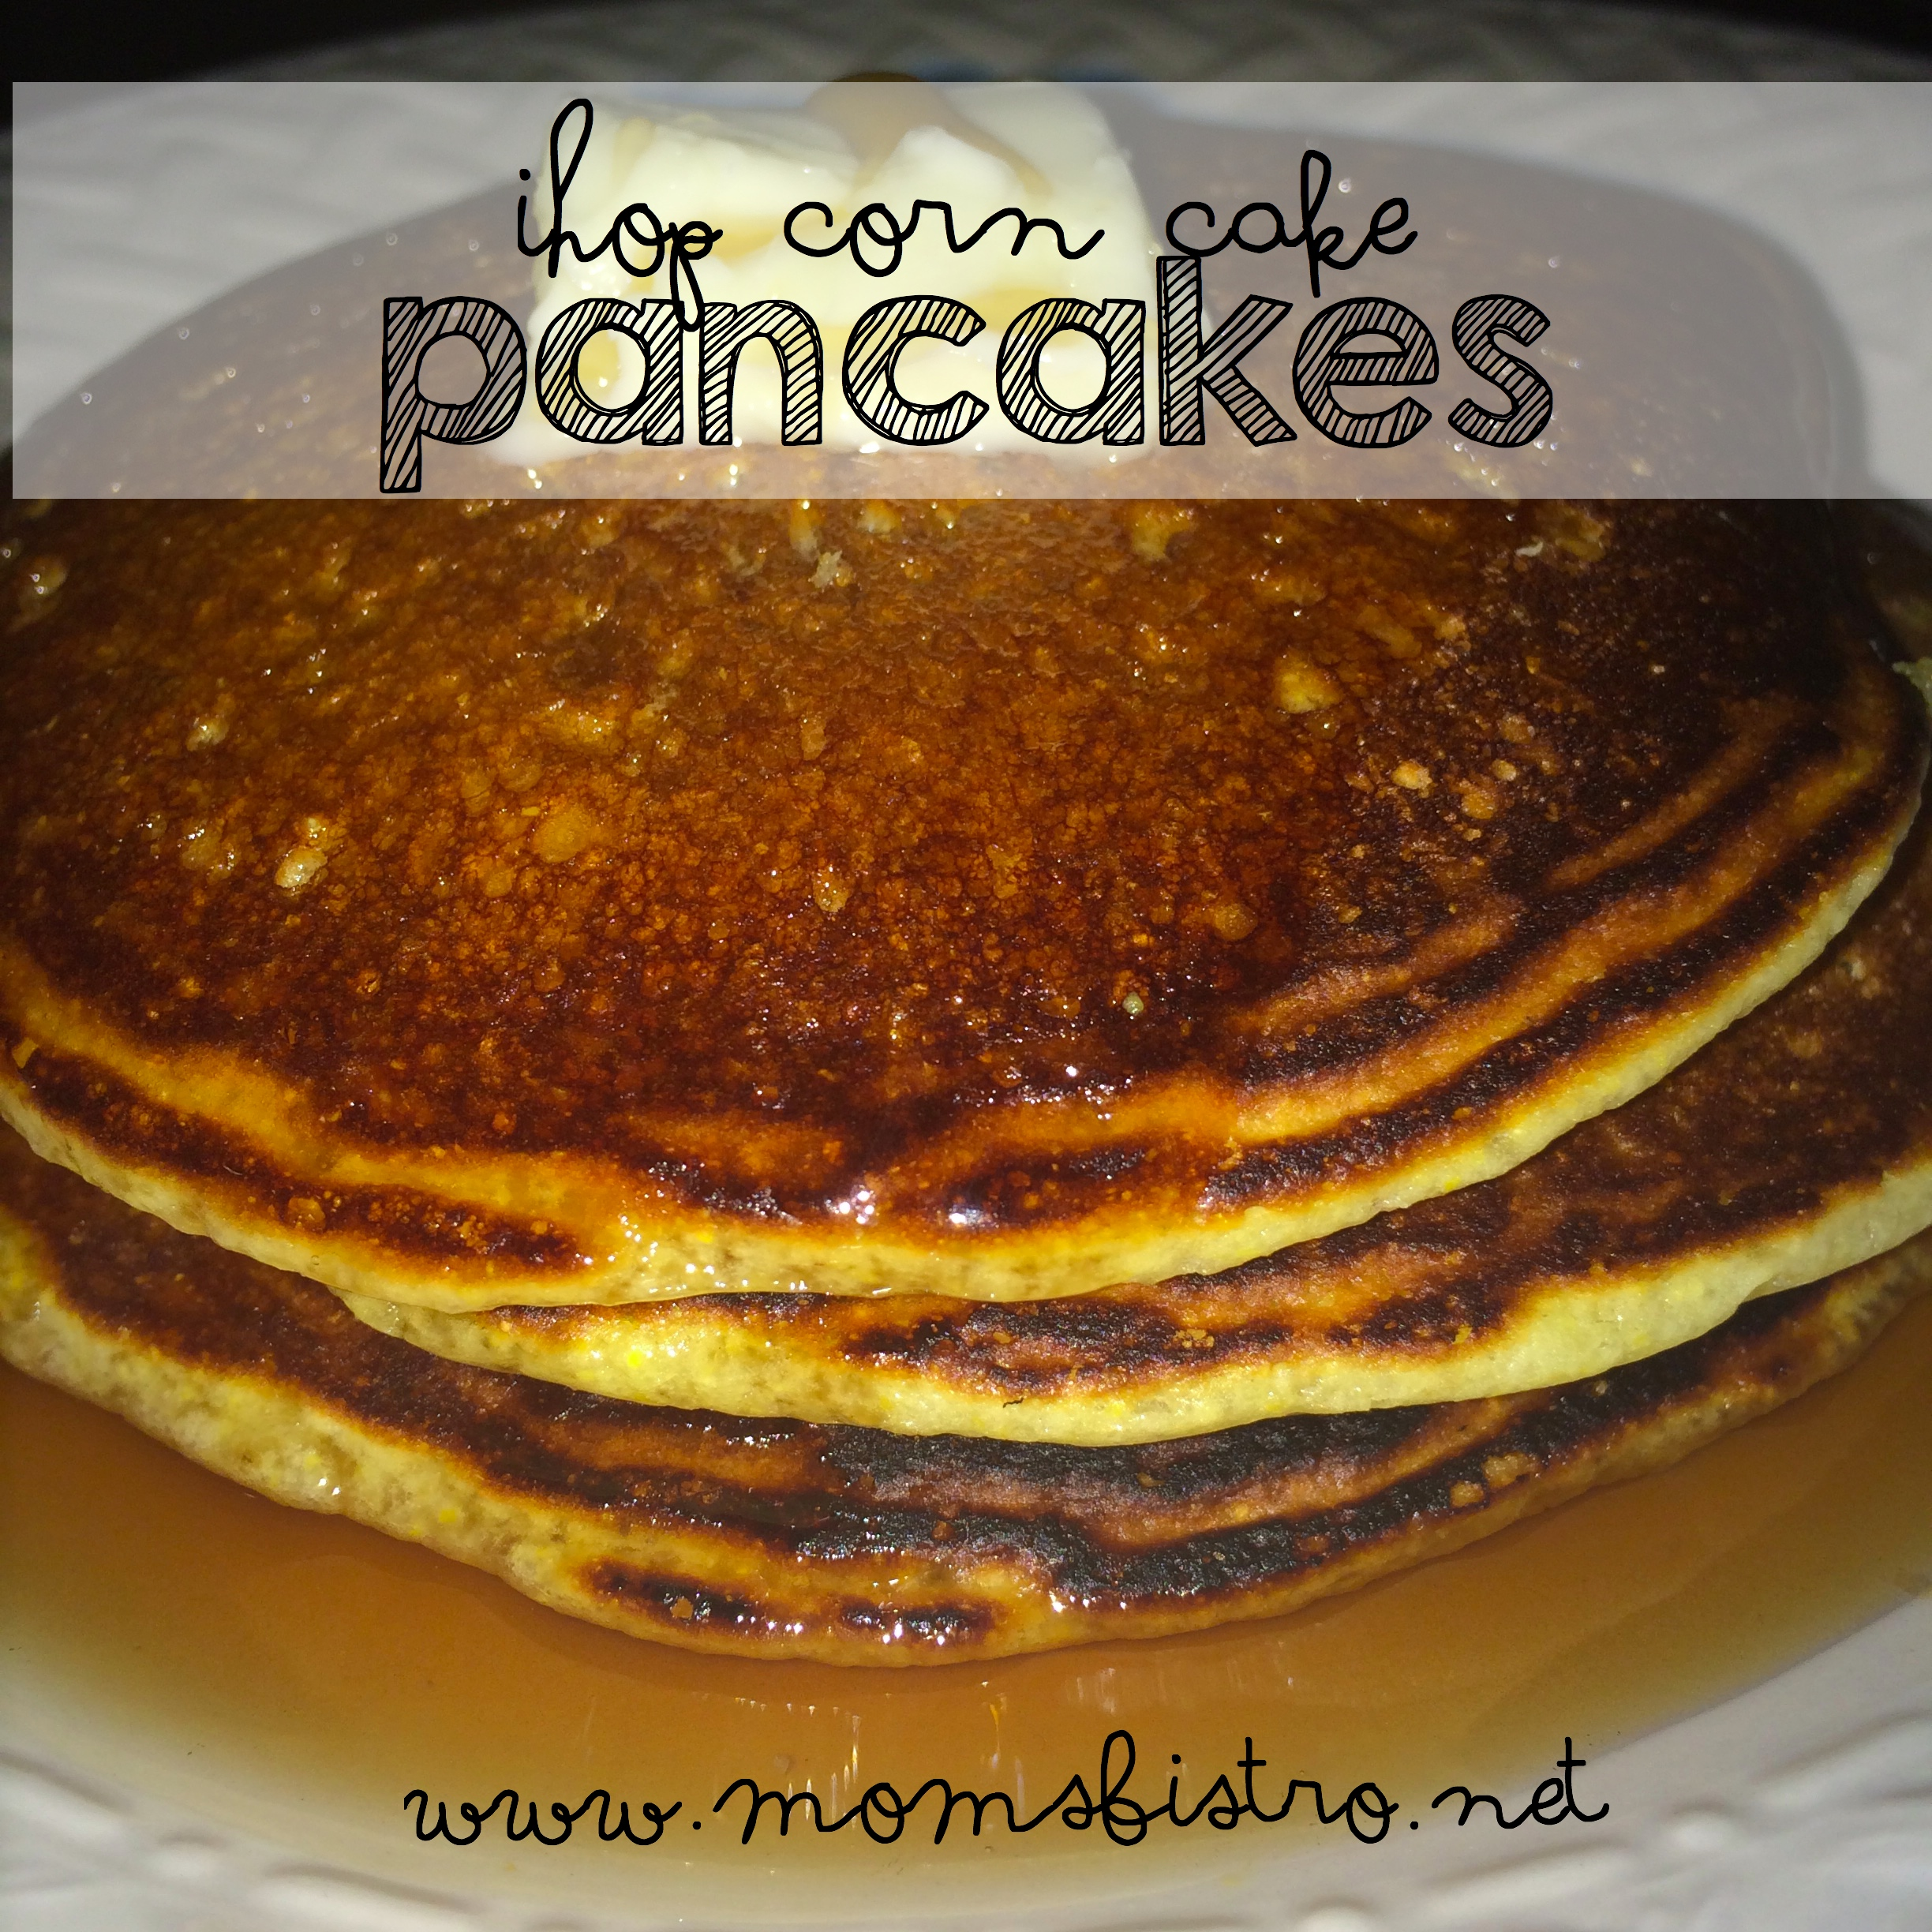 Change Up Your Pancake Routine This Weekend!  iHop Corn Cake Pancakes Recipe and Top Secret Recipes 3 Cookbook Review